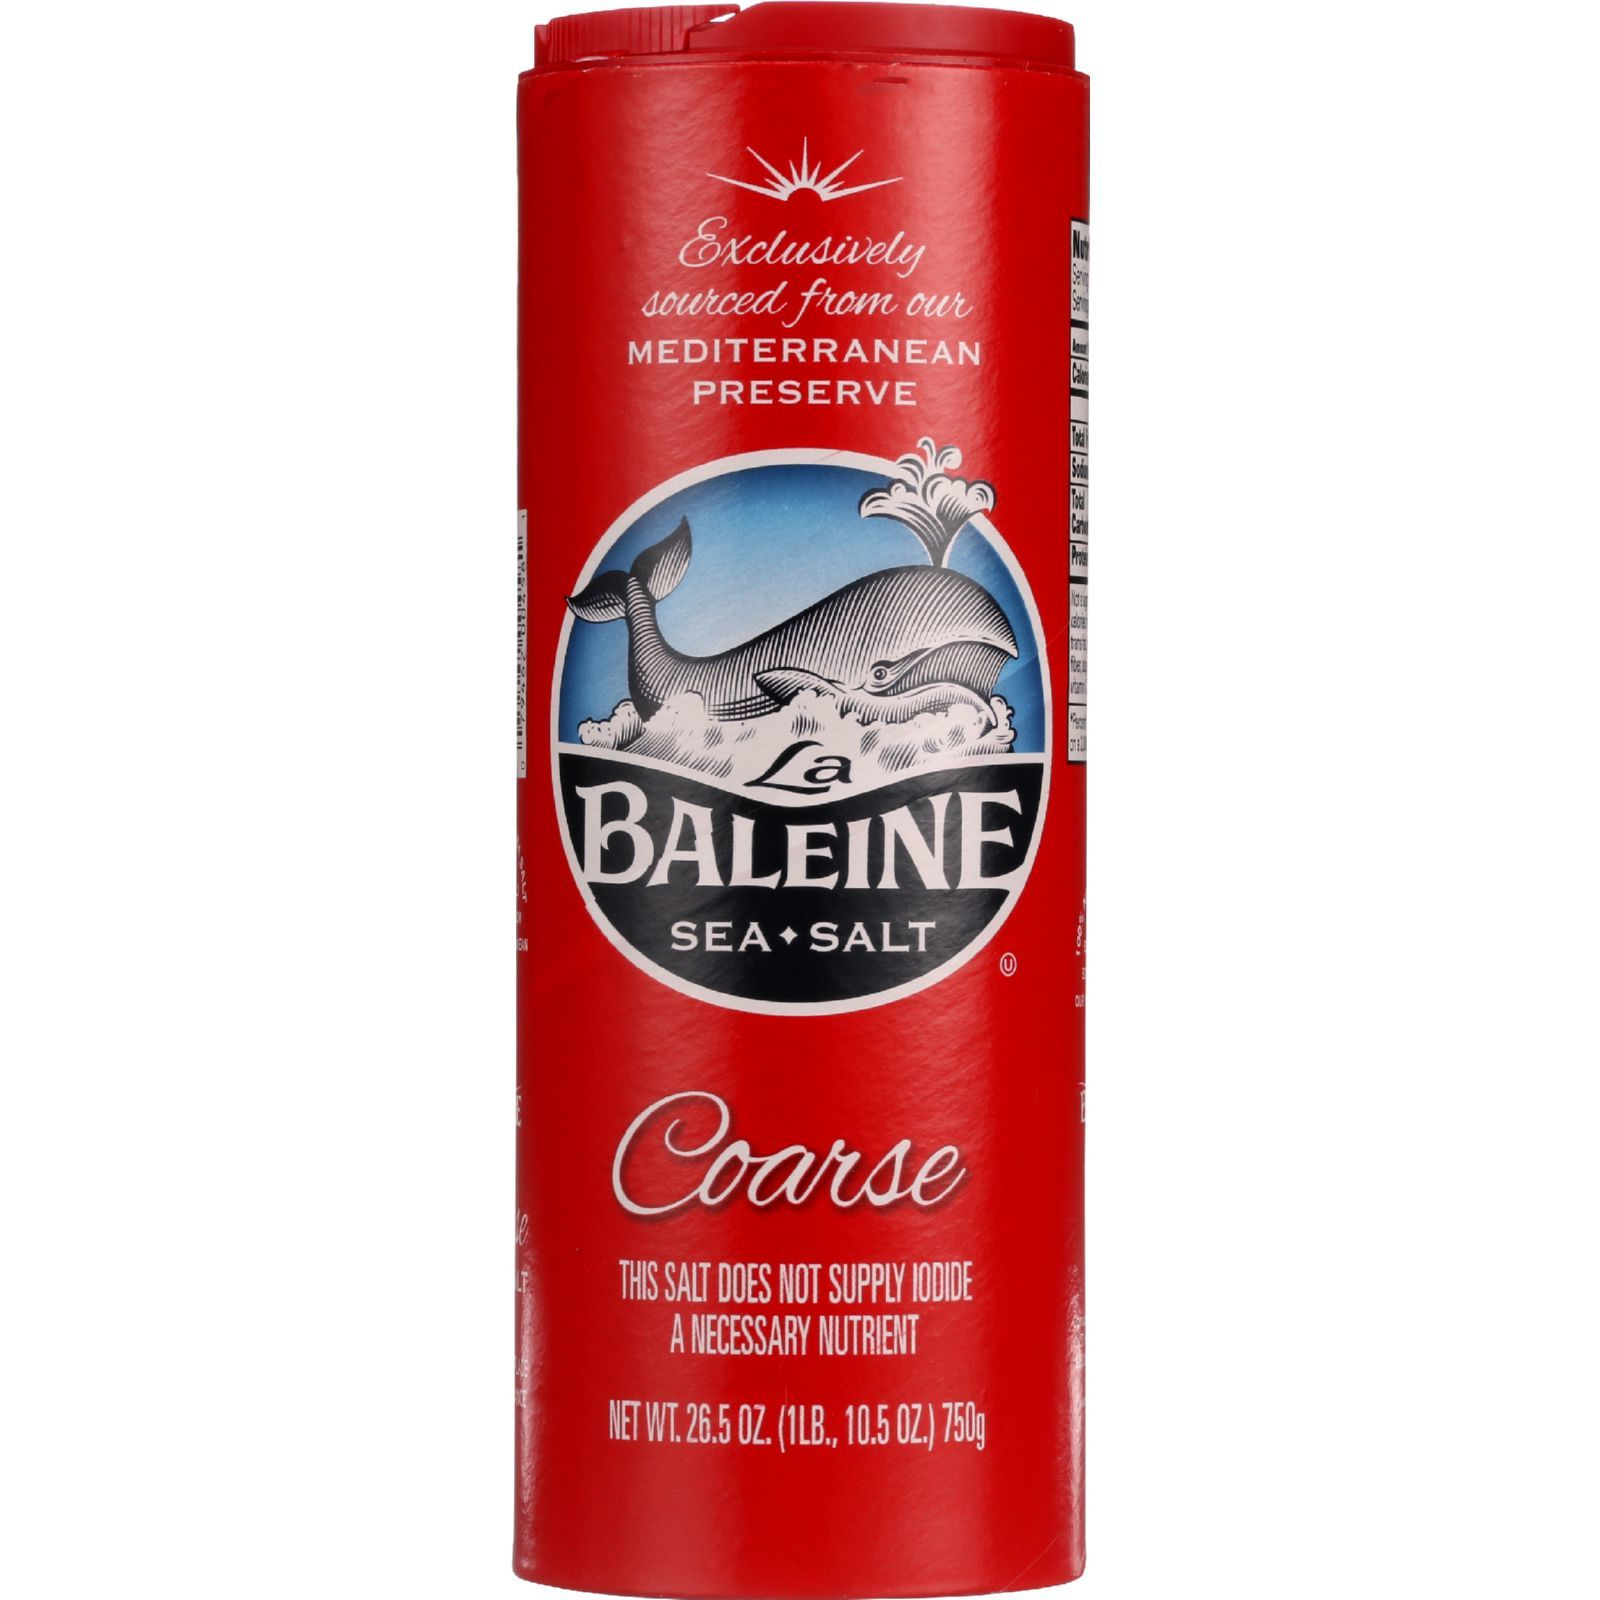 La Baleine Sea Salt Sea Salt - Coarse - 26.5 oz - case of 12